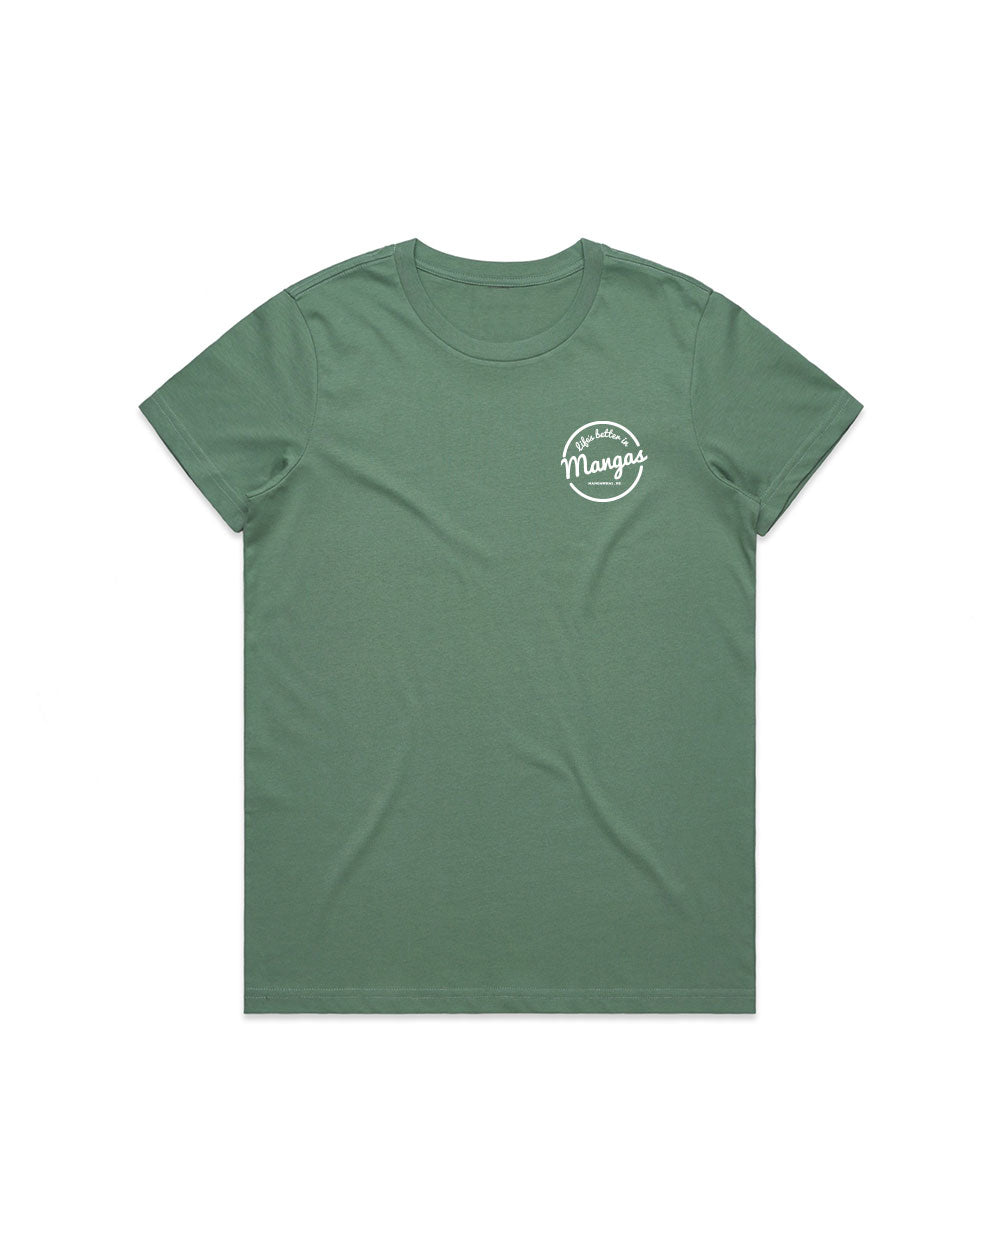 Ladies Life's Better Sage Tee - Threadbox